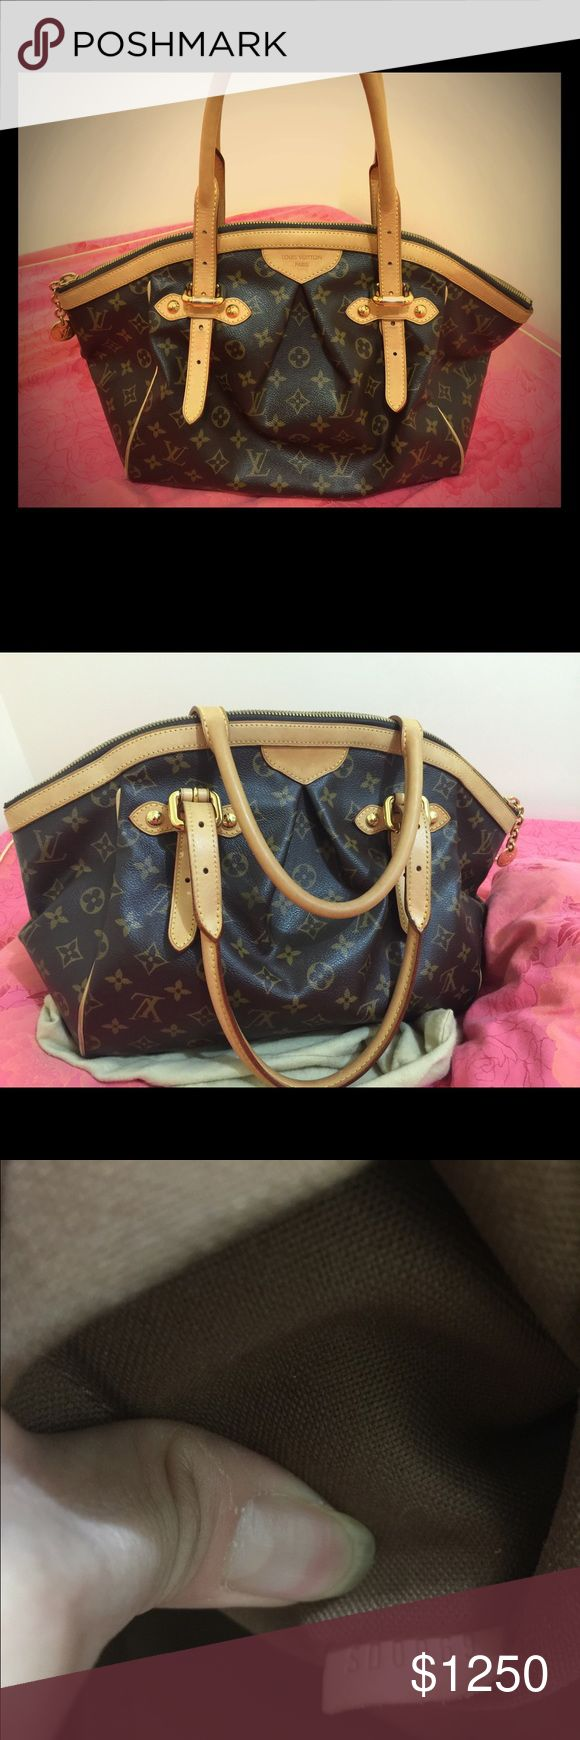 Louis Vuitton tivoli gm Second hand women purse bought it from 2009 gently used Louis Vuitton Bags Shoulder Bags